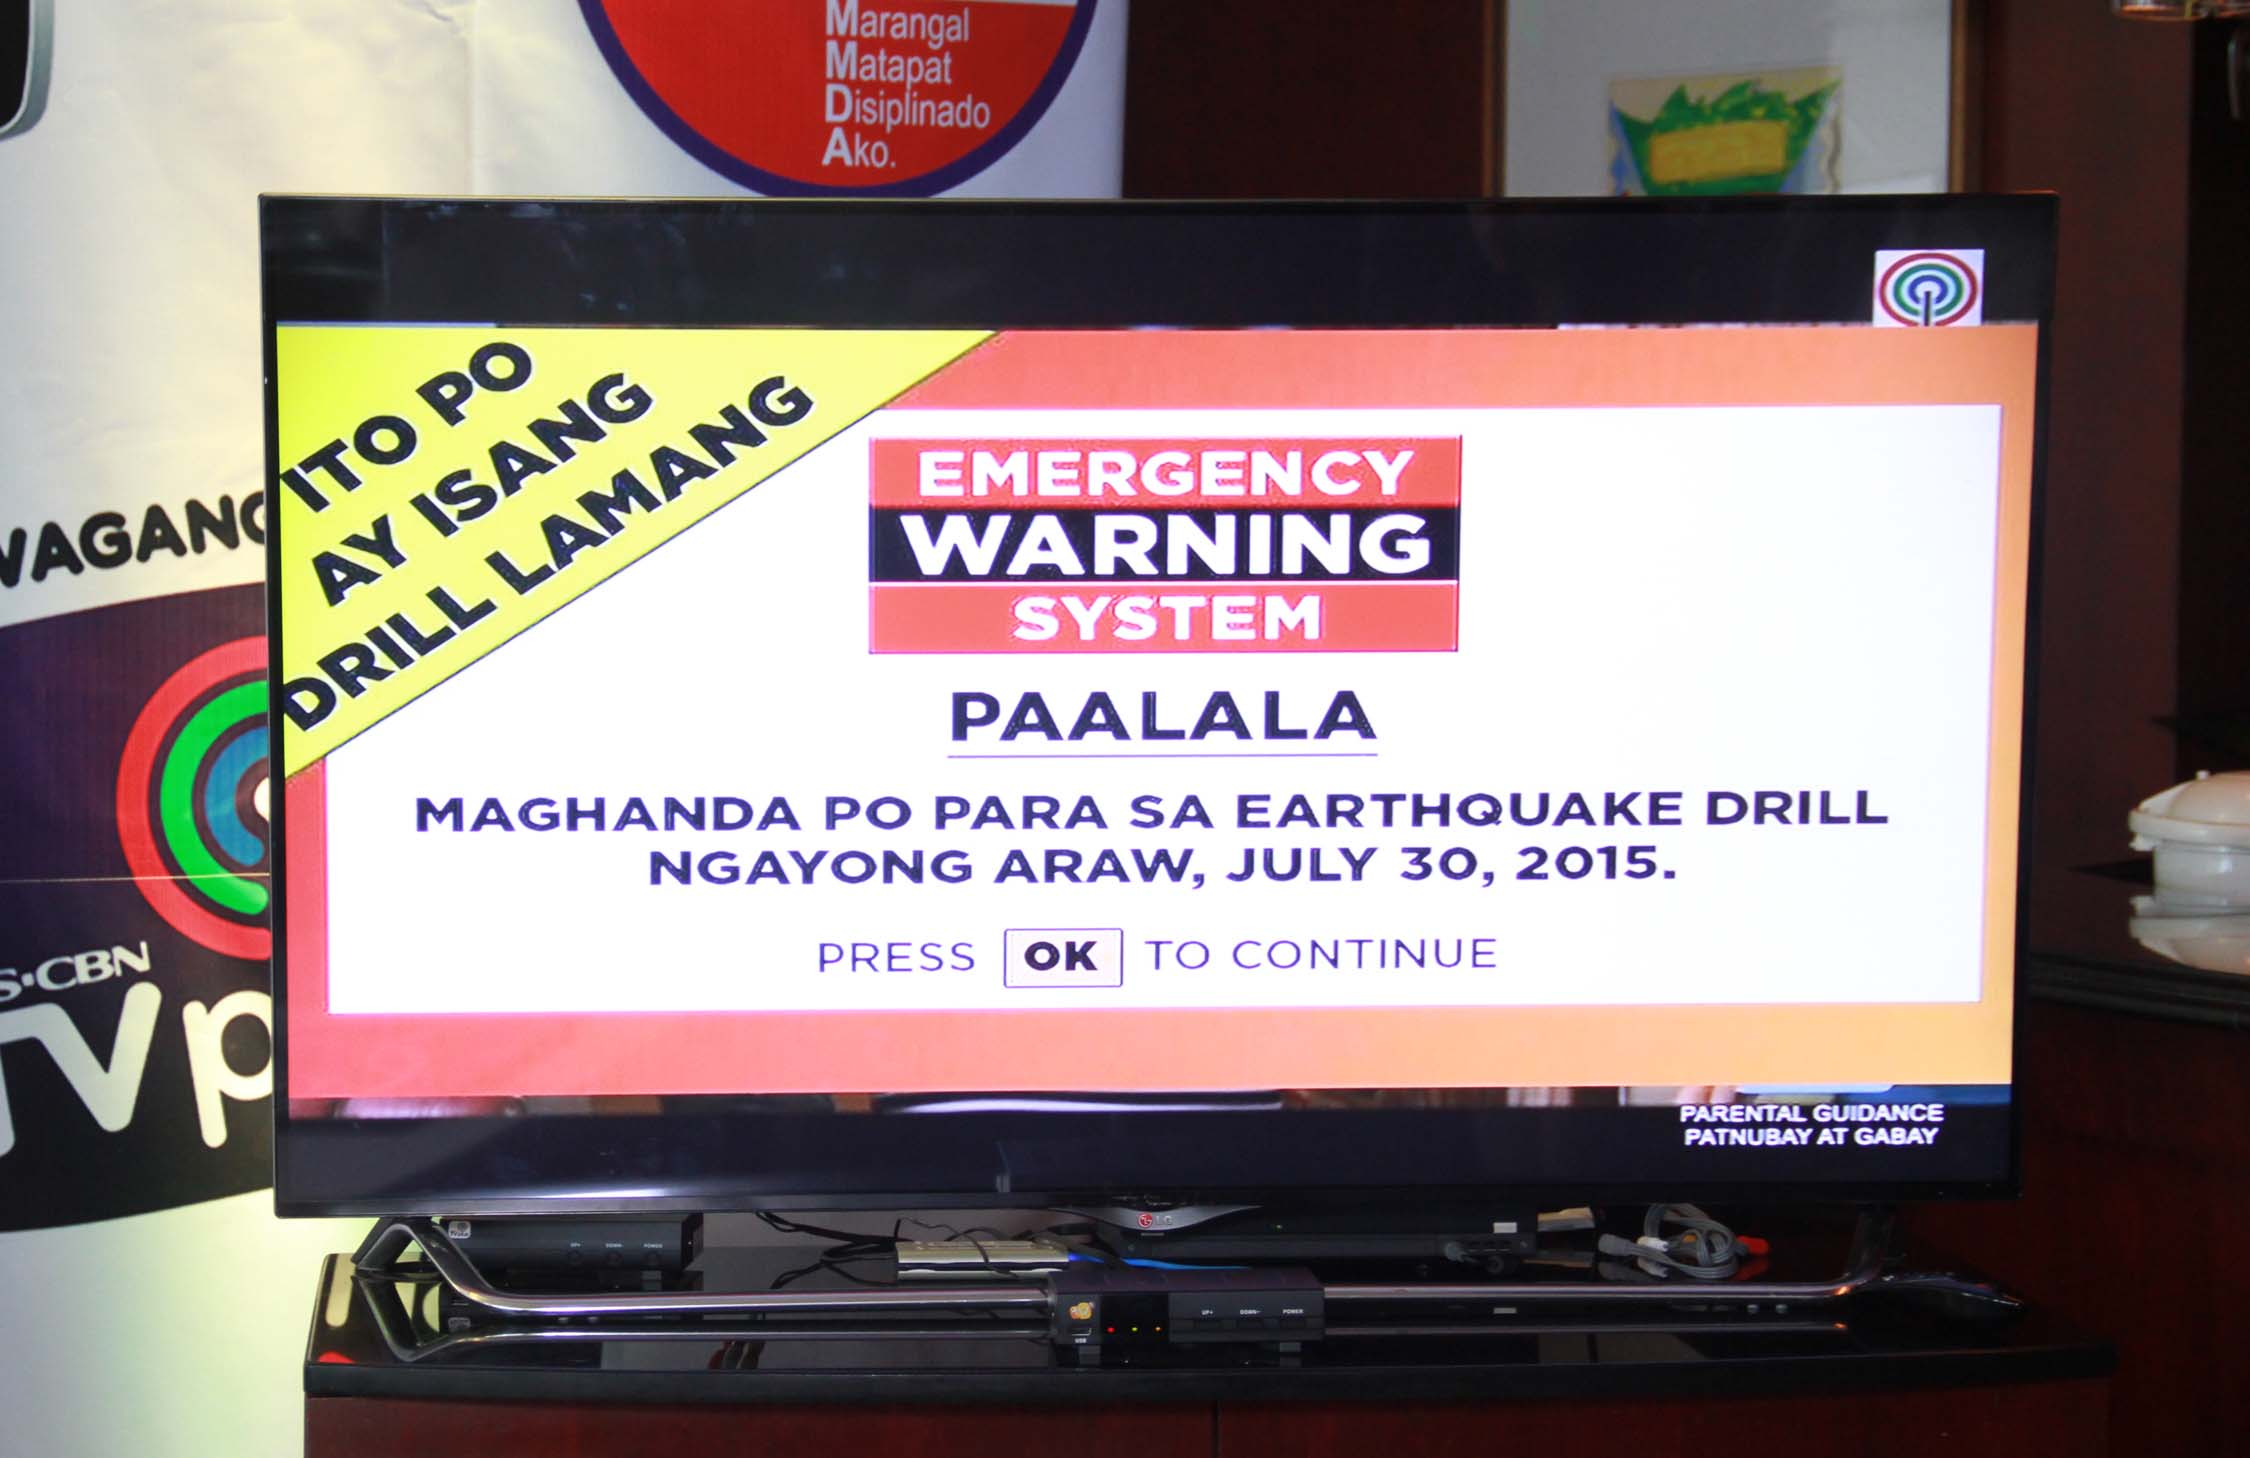 ABS-CBN TVplus users will receive warning messages on their TVs during the July 30 earthquake drill